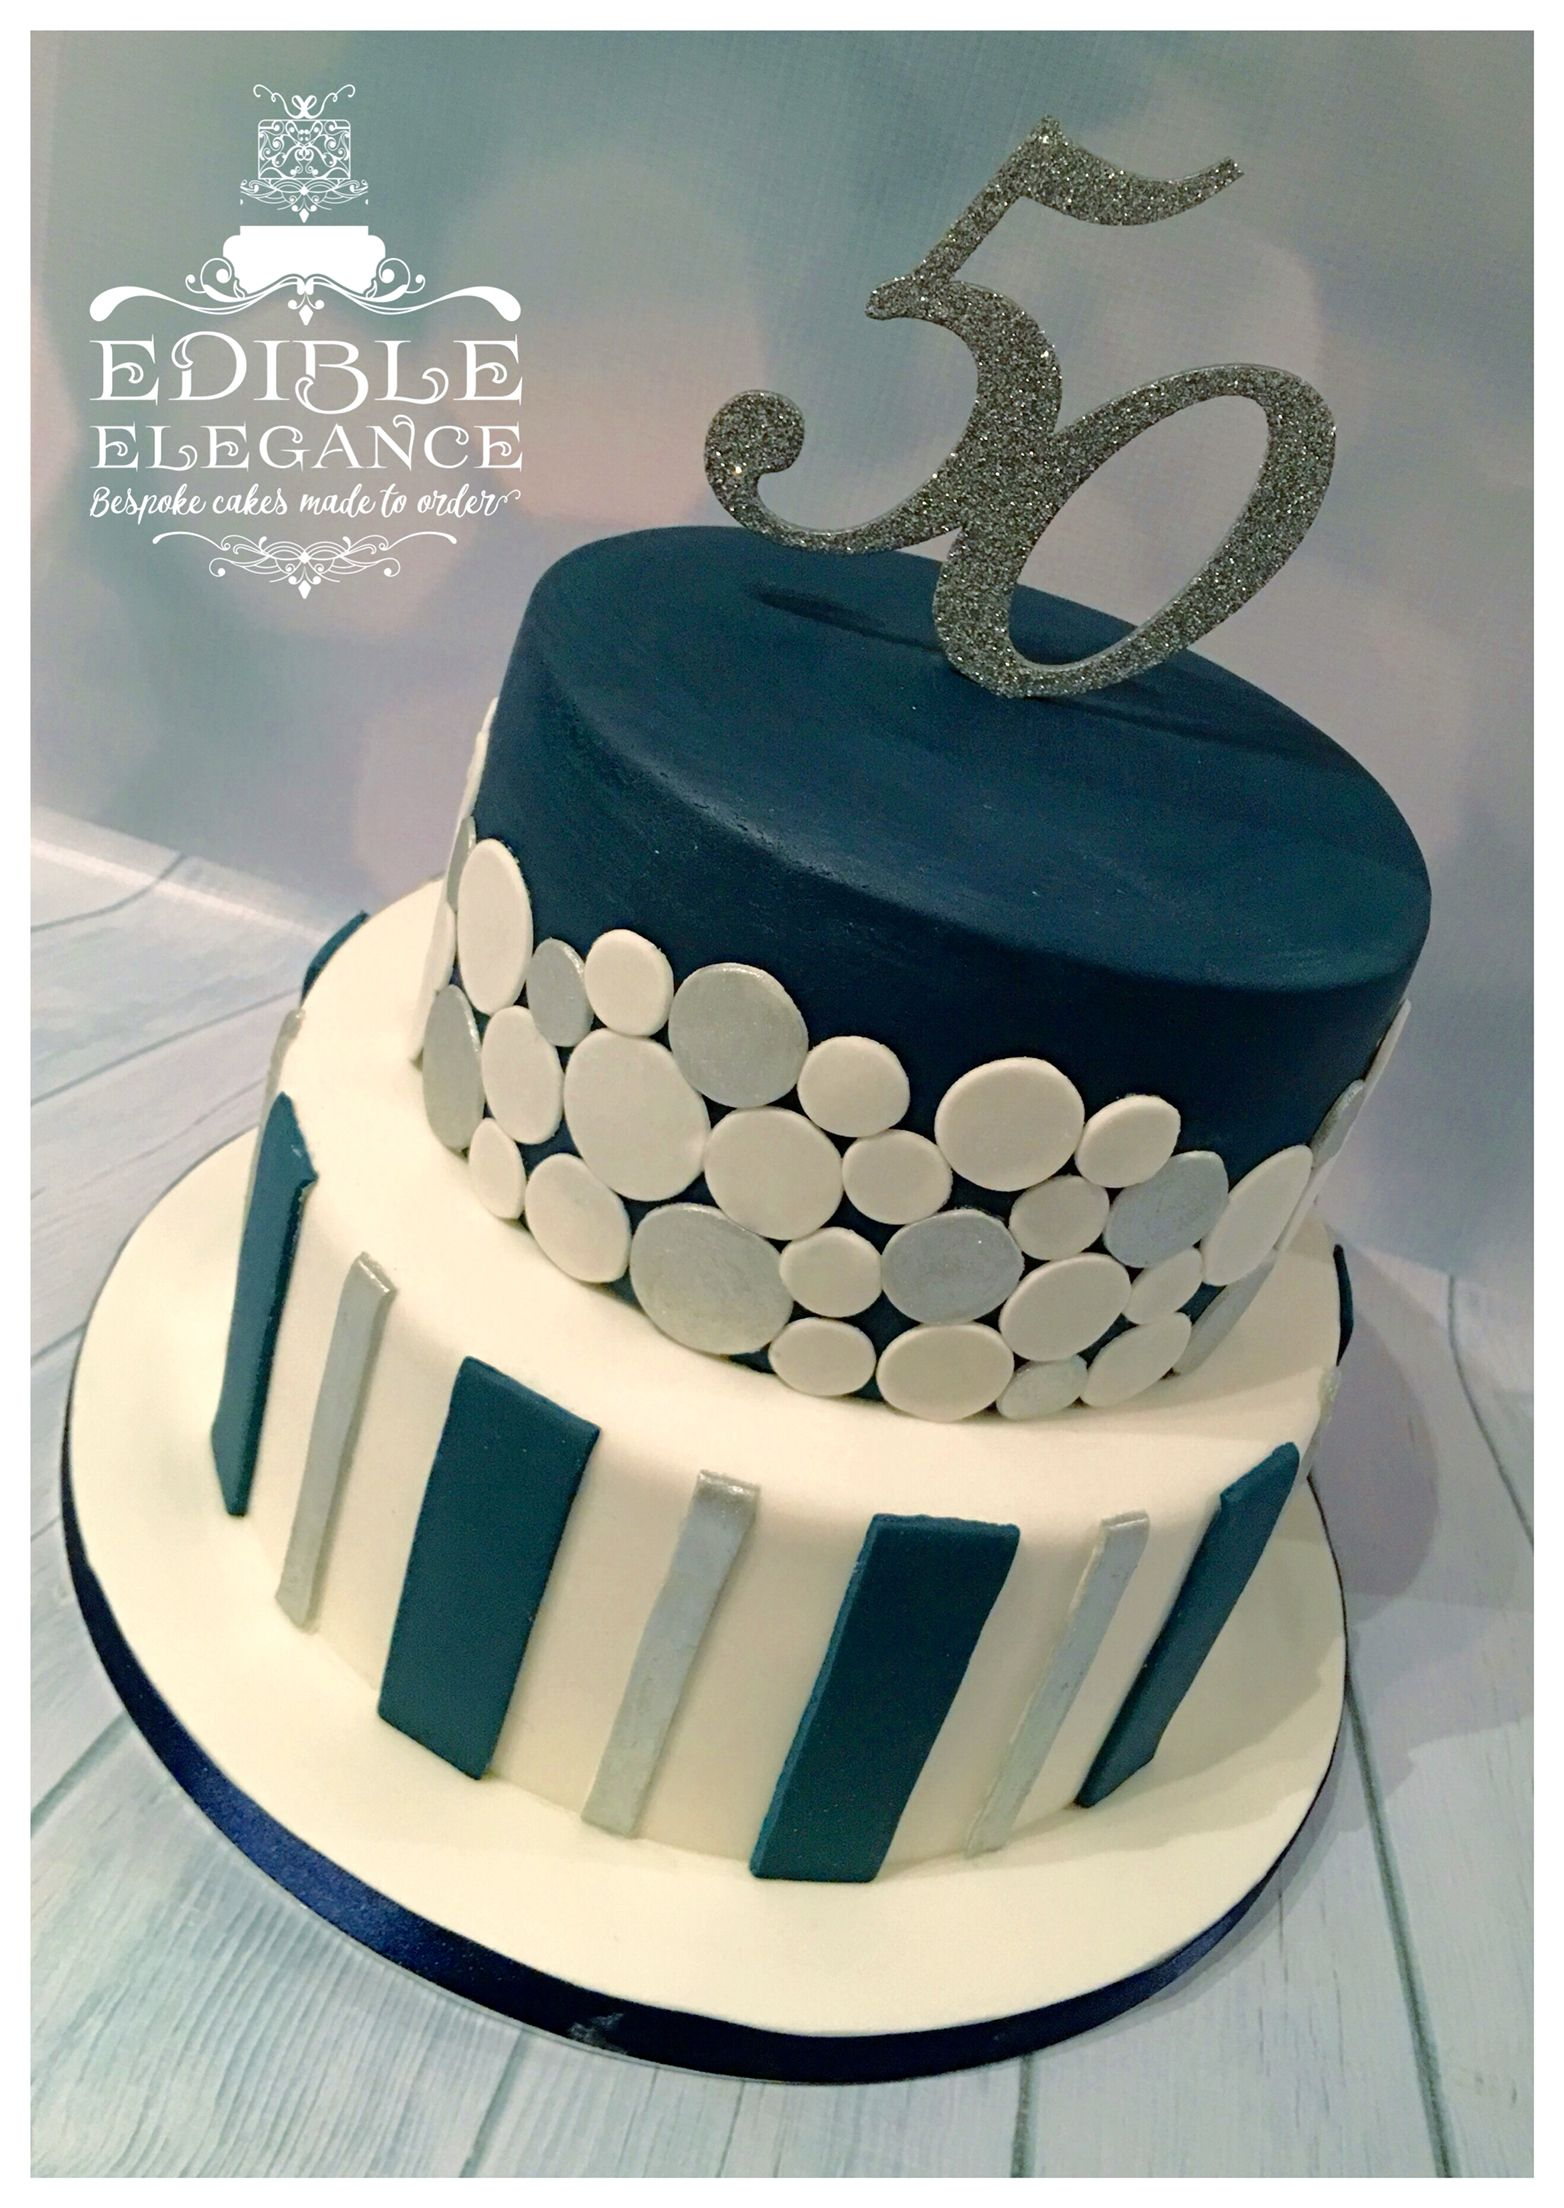 Birthday Cake Ideas For Adults 50th Birthday Cake Contemporary Design In Masculine Blue White And